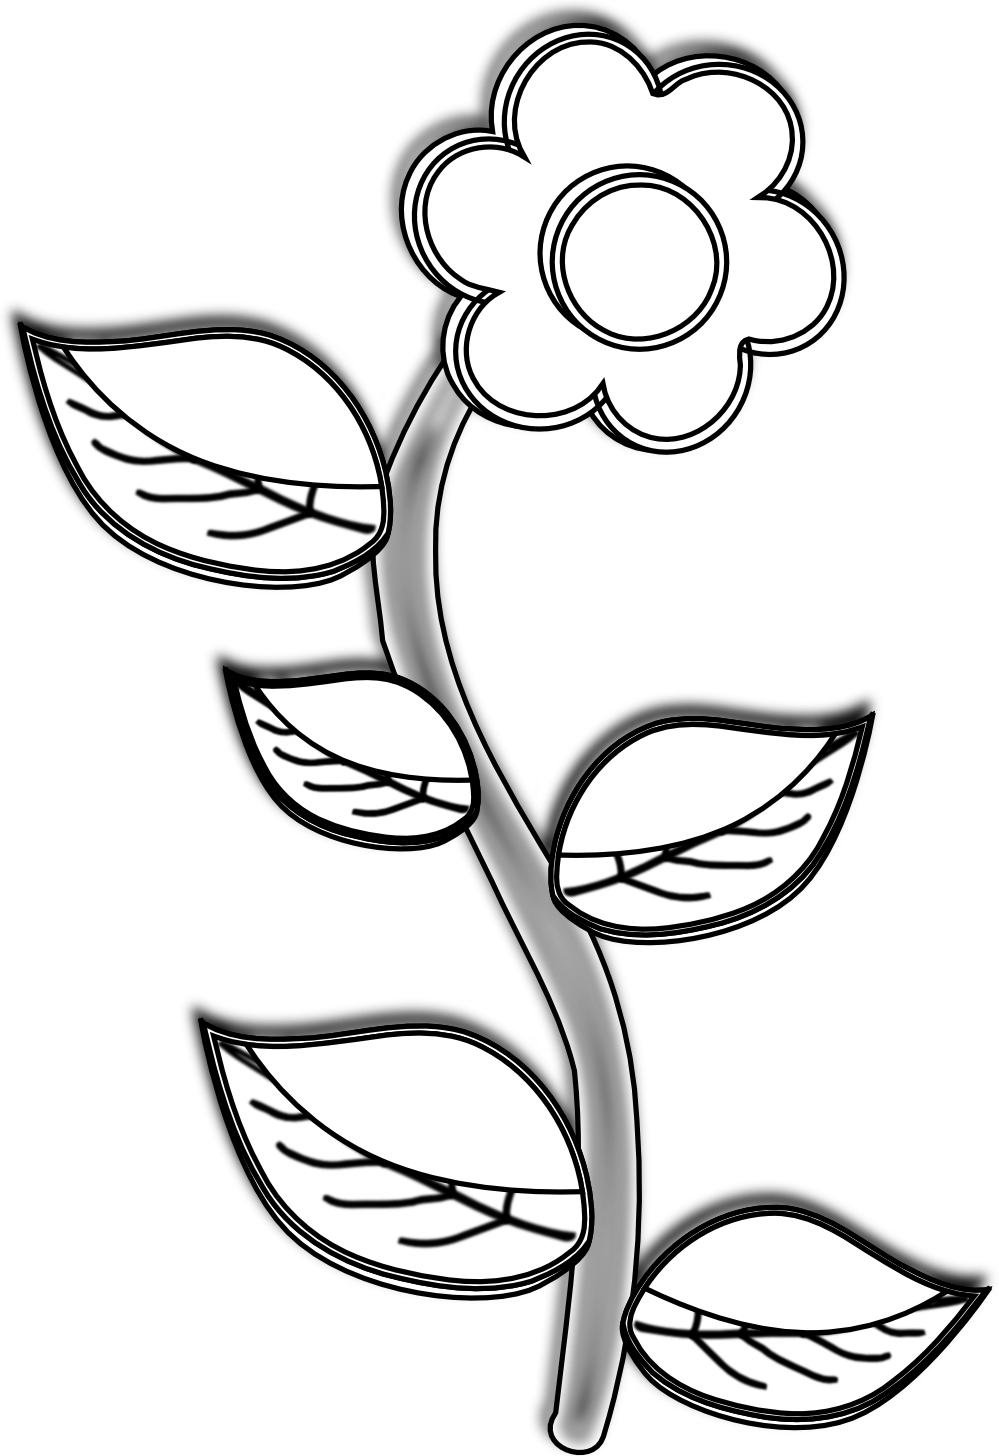 Rose flower clipart black and white clipart freeuse library Jasmine Flower Drawing at GetDrawings.com | Free for personal use ... clipart freeuse library